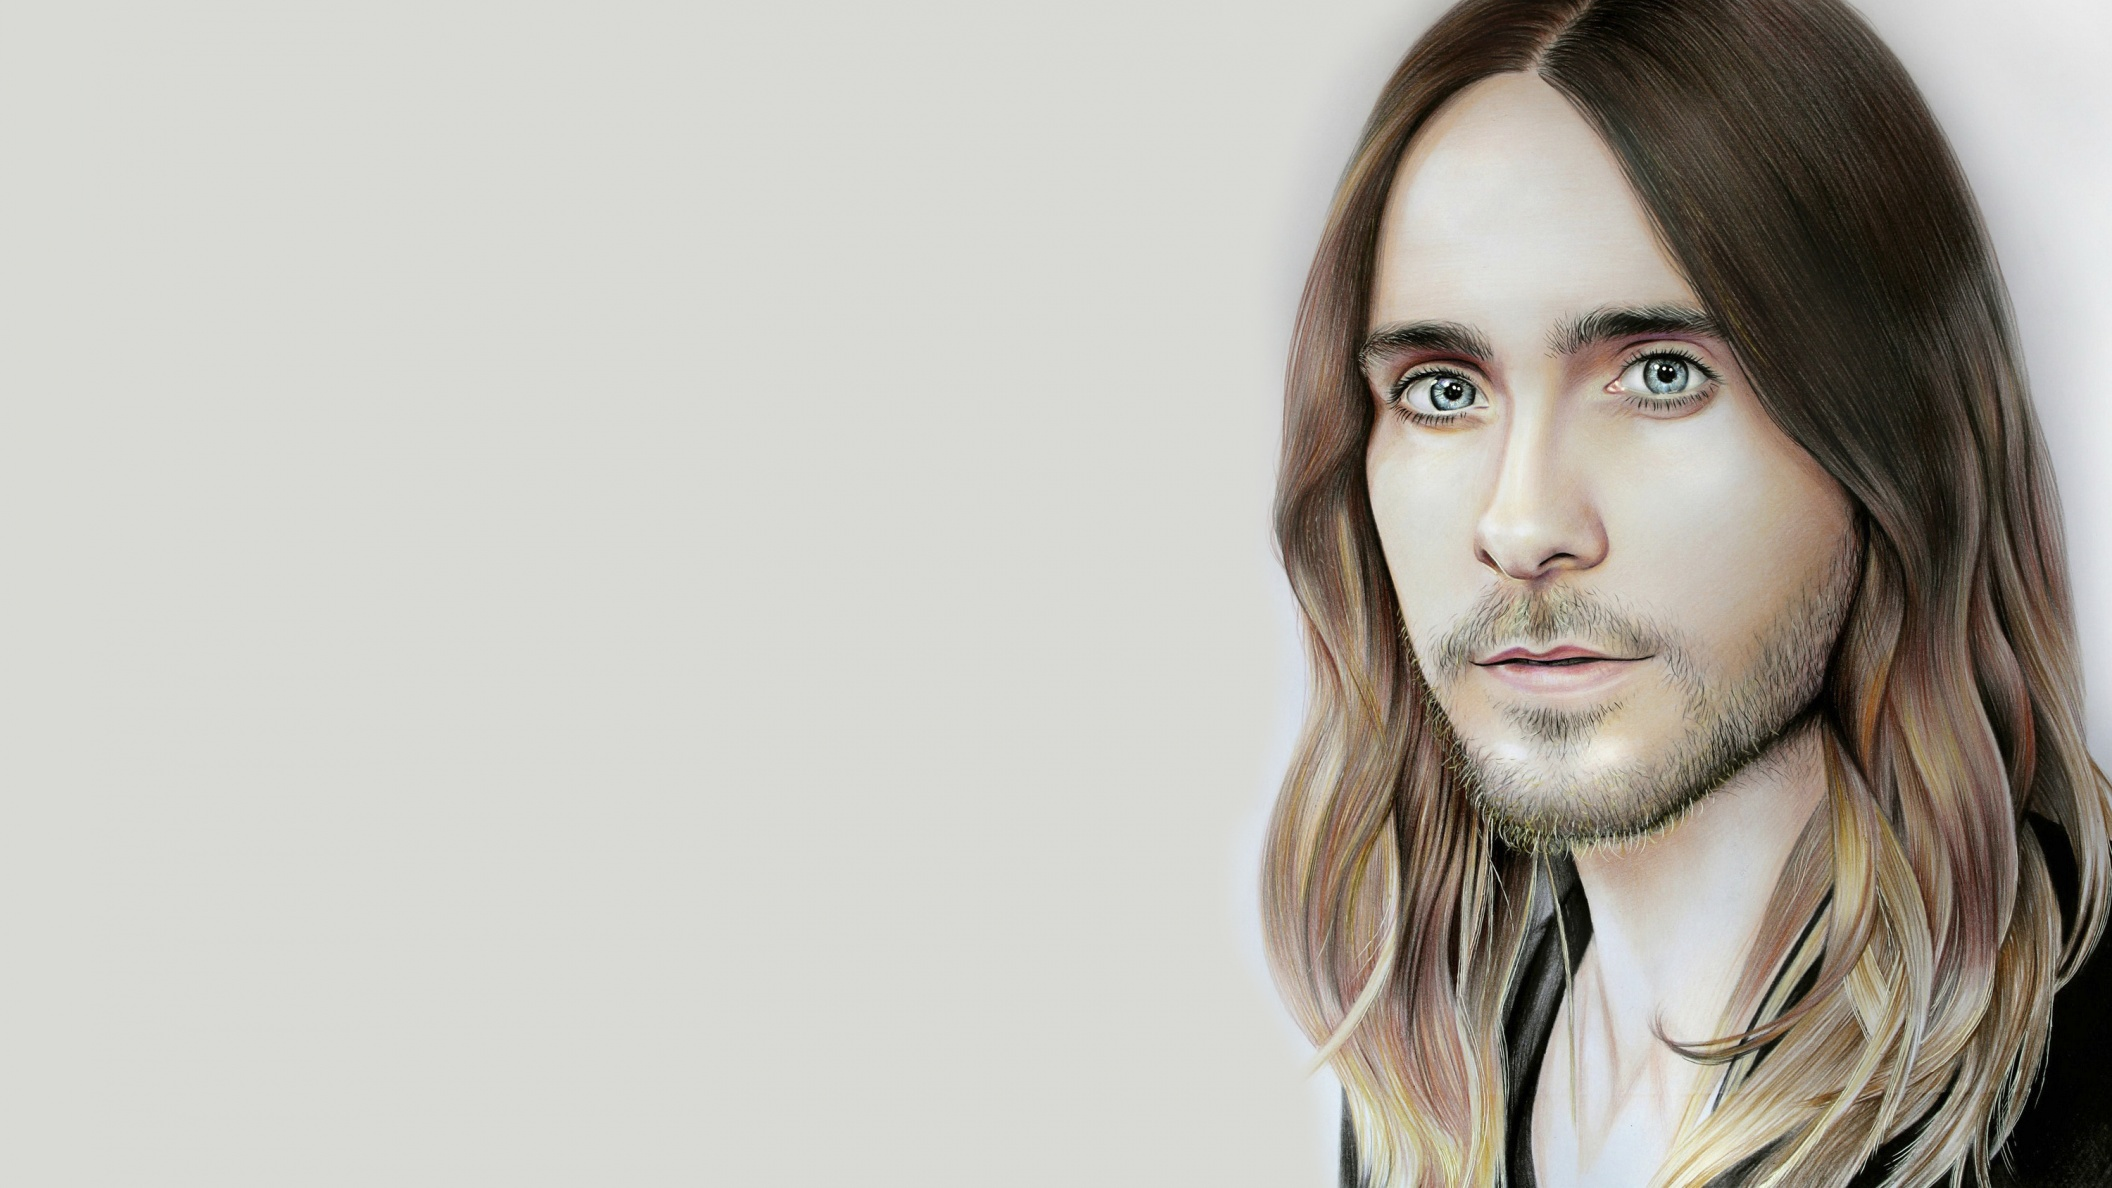 Jared Leto Computer Wallpaper